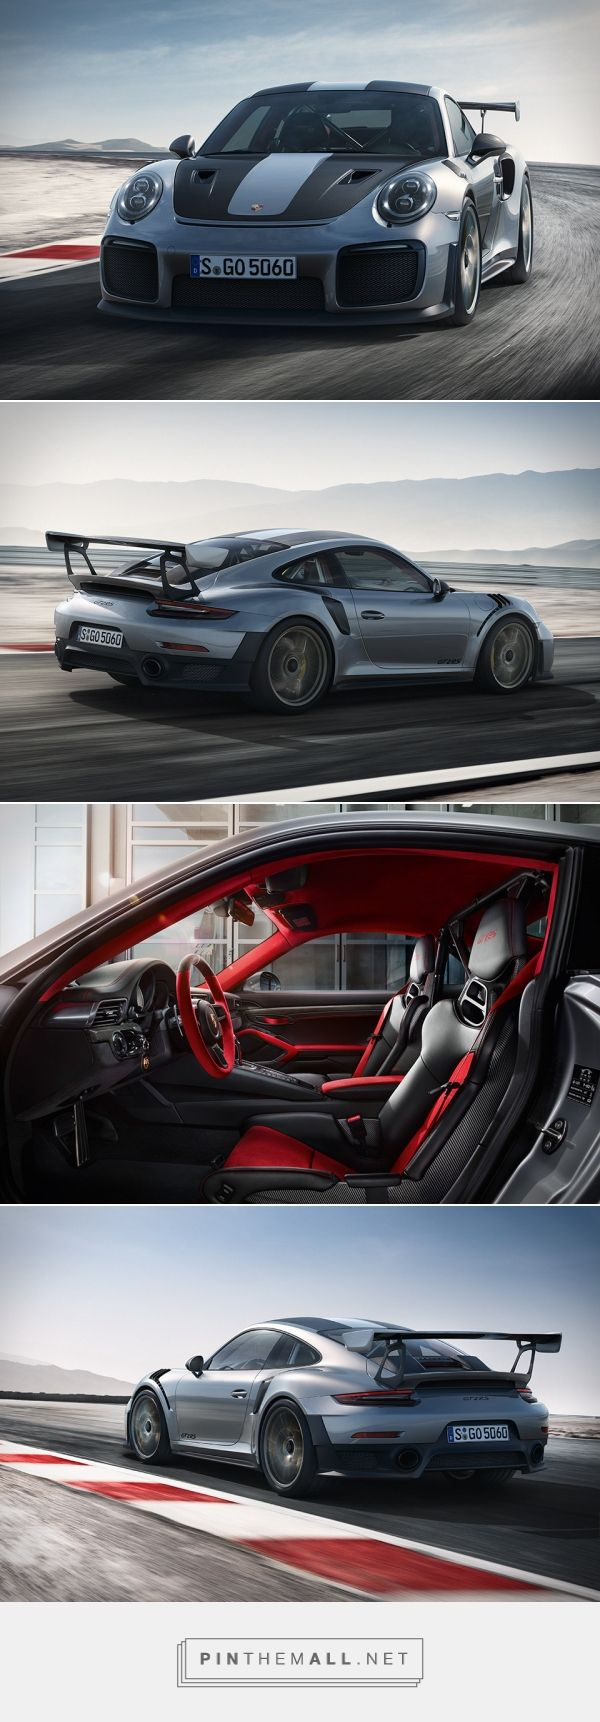 2018 Porsche 911 GT2 RS https://www.amazon.co.uk/Baby-Car-Mirror-Shatterproof-Installation/dp/B06XHG6SSY